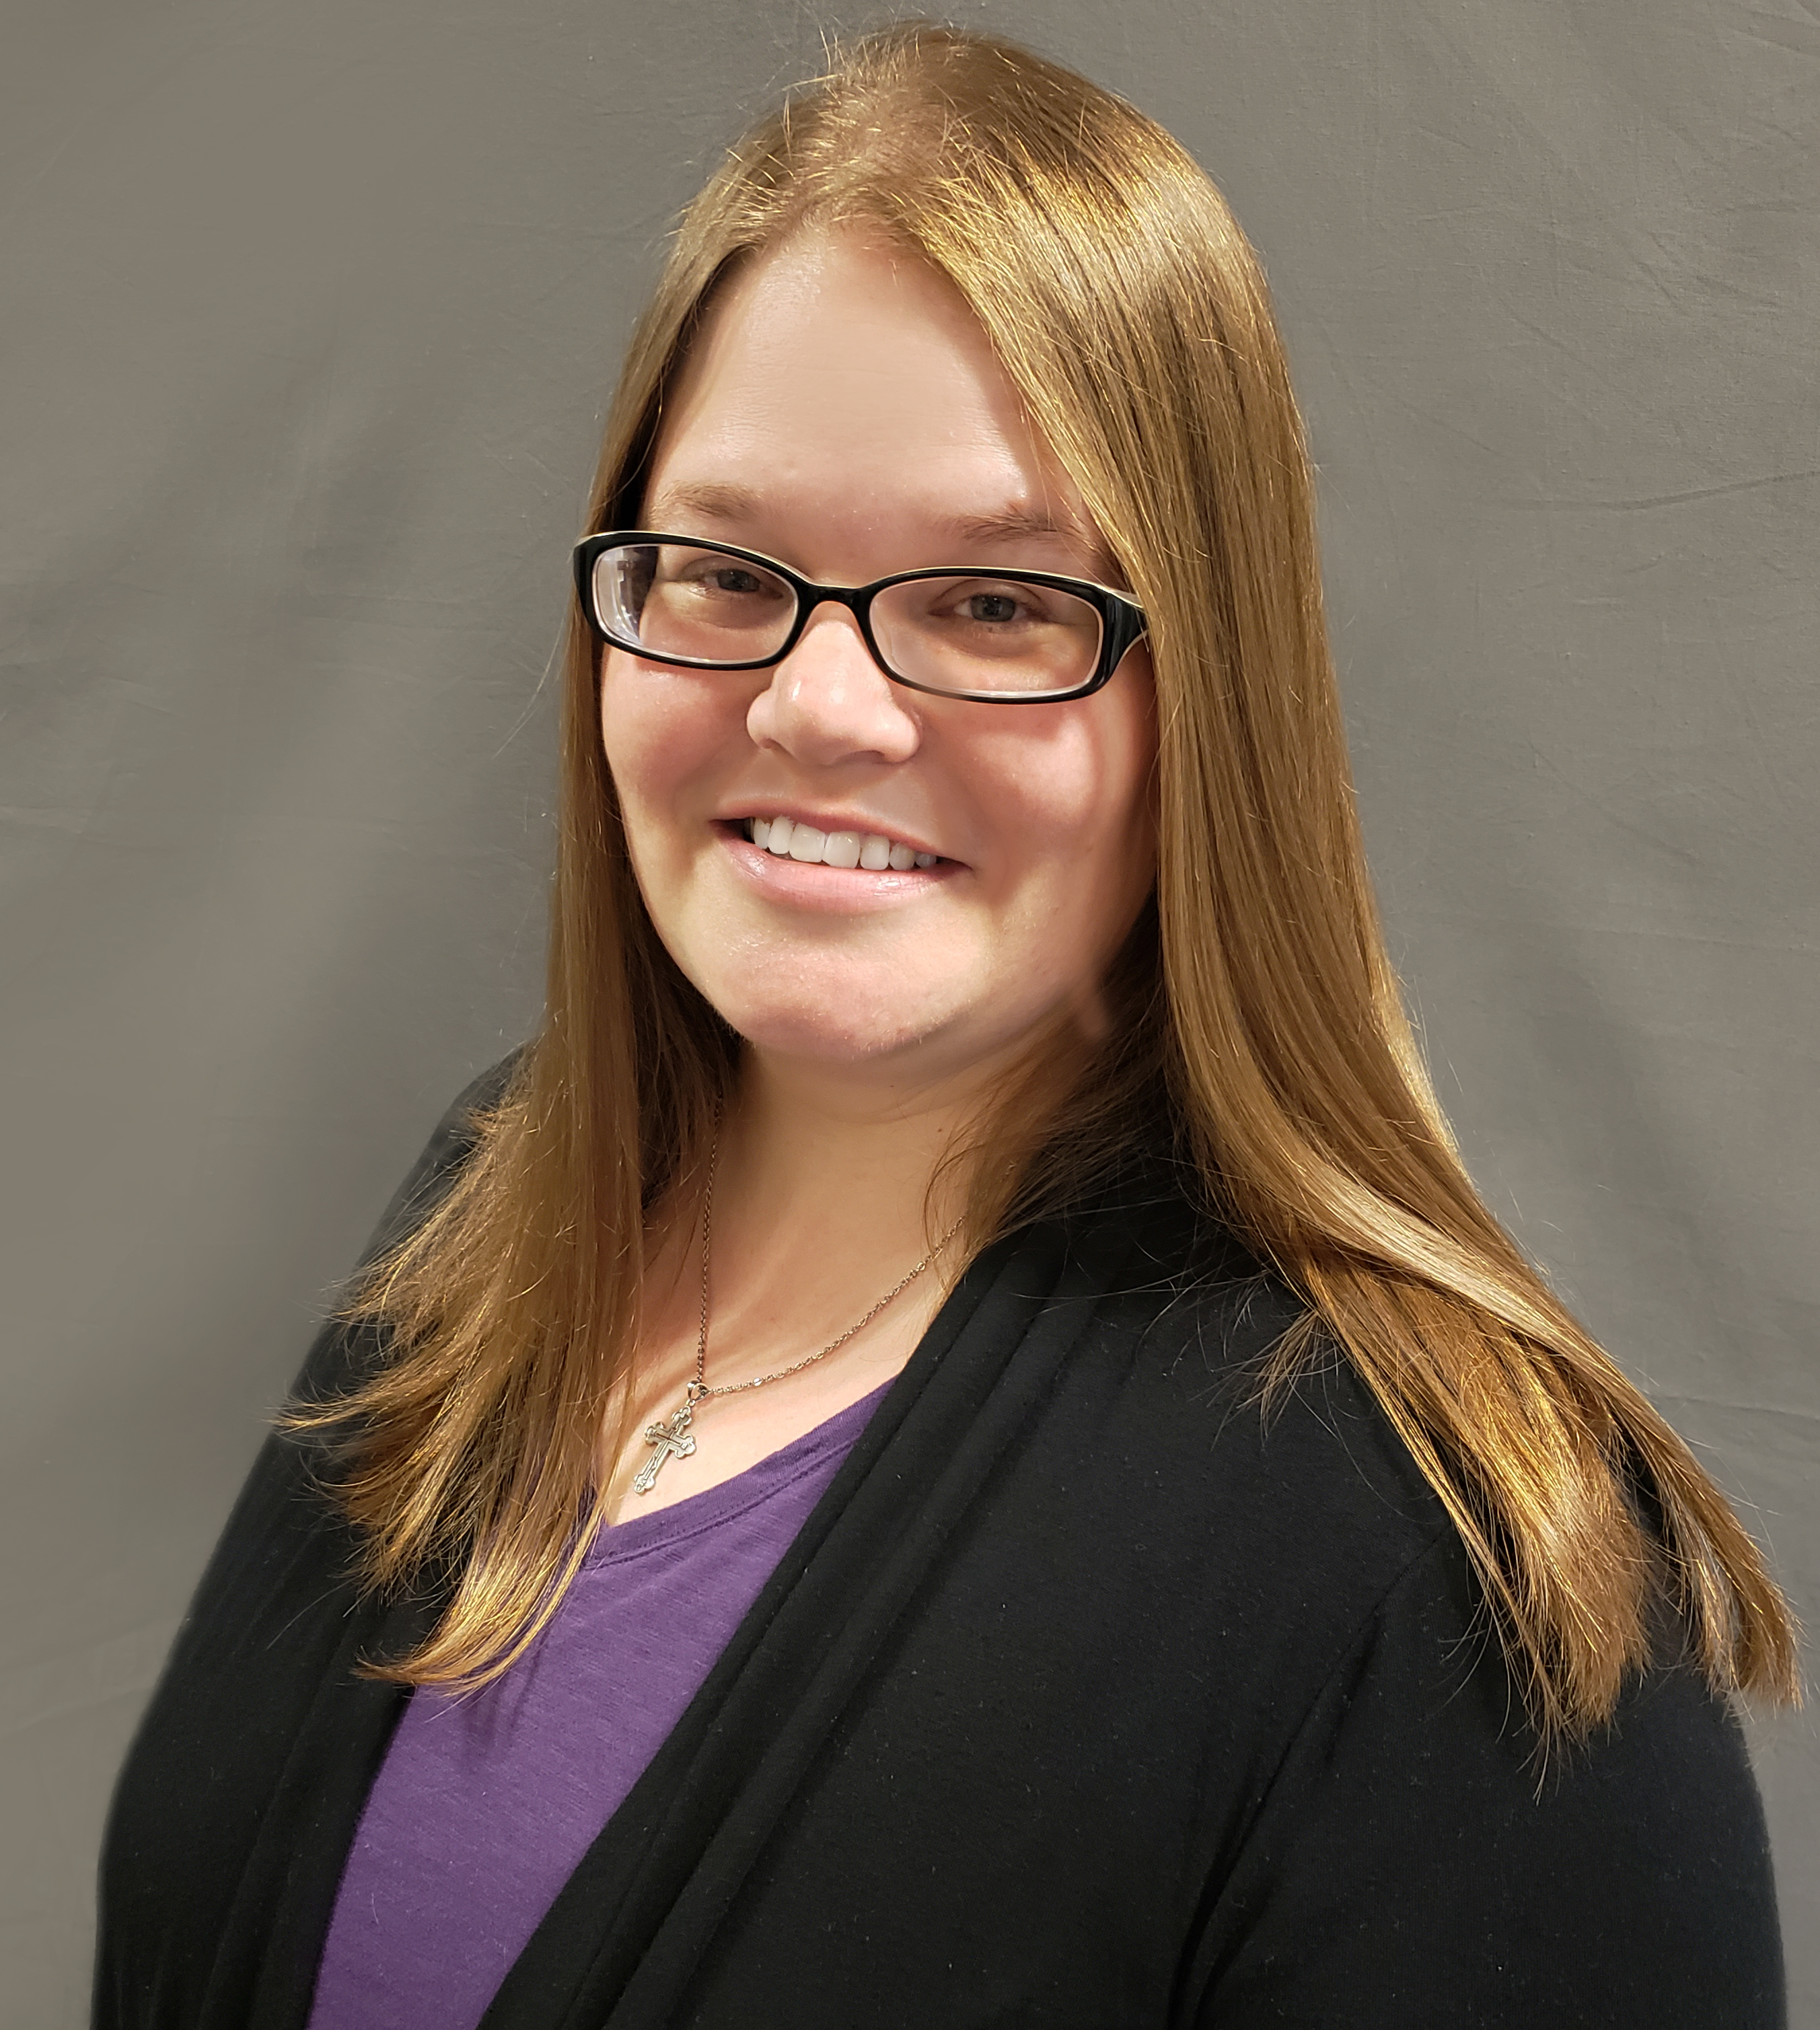 Leah Sparks, BSW Activity Director